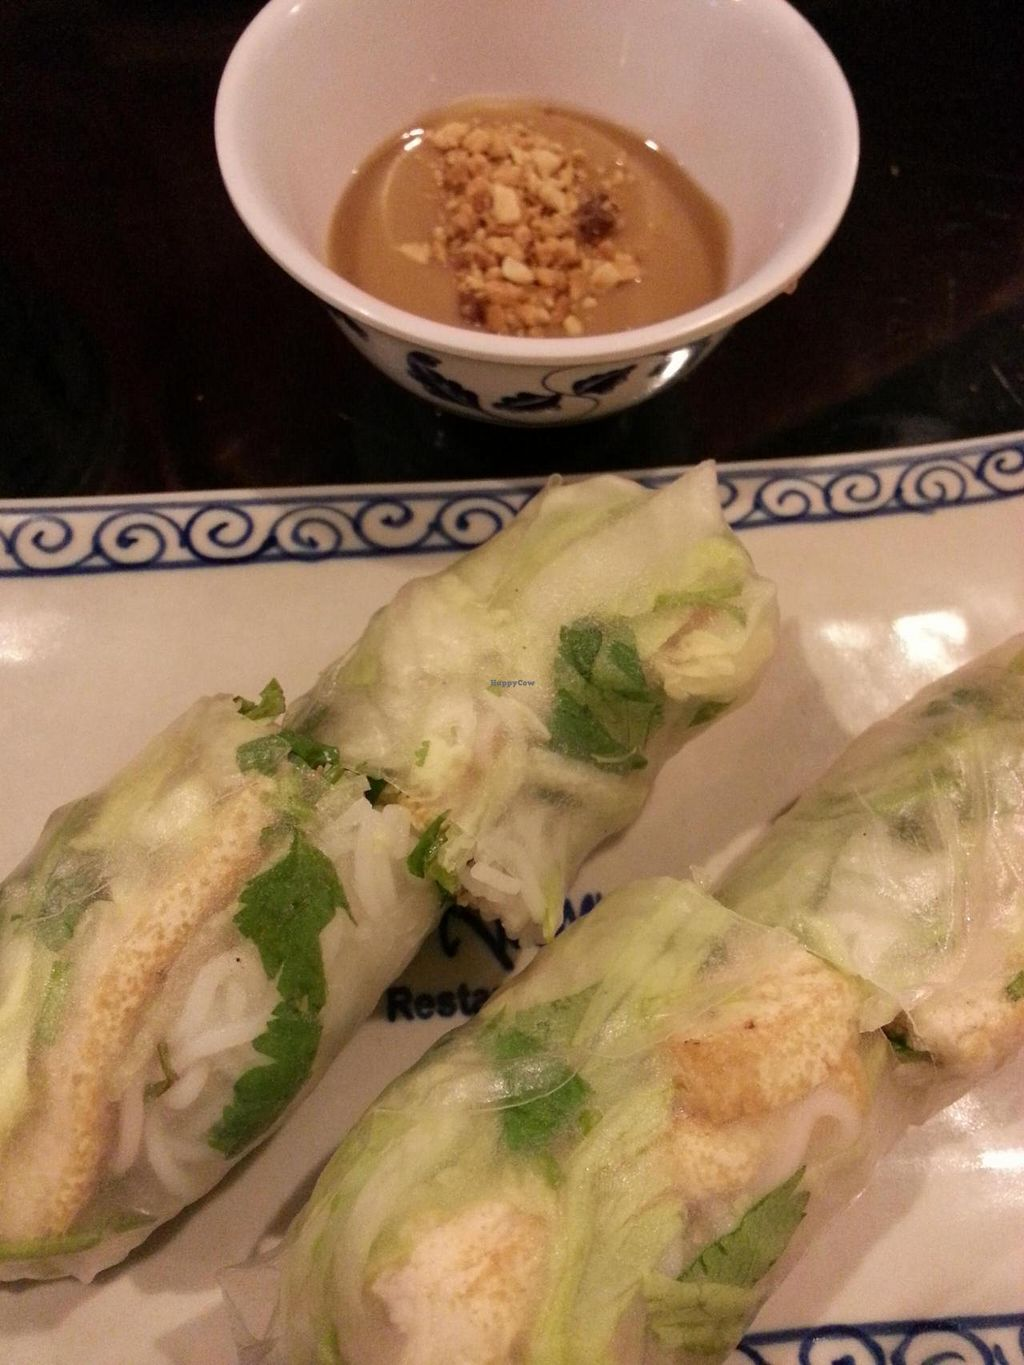 "Photo of Viet Kitchen  by <a href=""/members/profile/radtechg9"">radtechg9</a> <br/>tofu spring rolls w peanut sauce <br/> November 8, 2014  - <a href='/contact/abuse/image/30076/85040'>Report</a>"